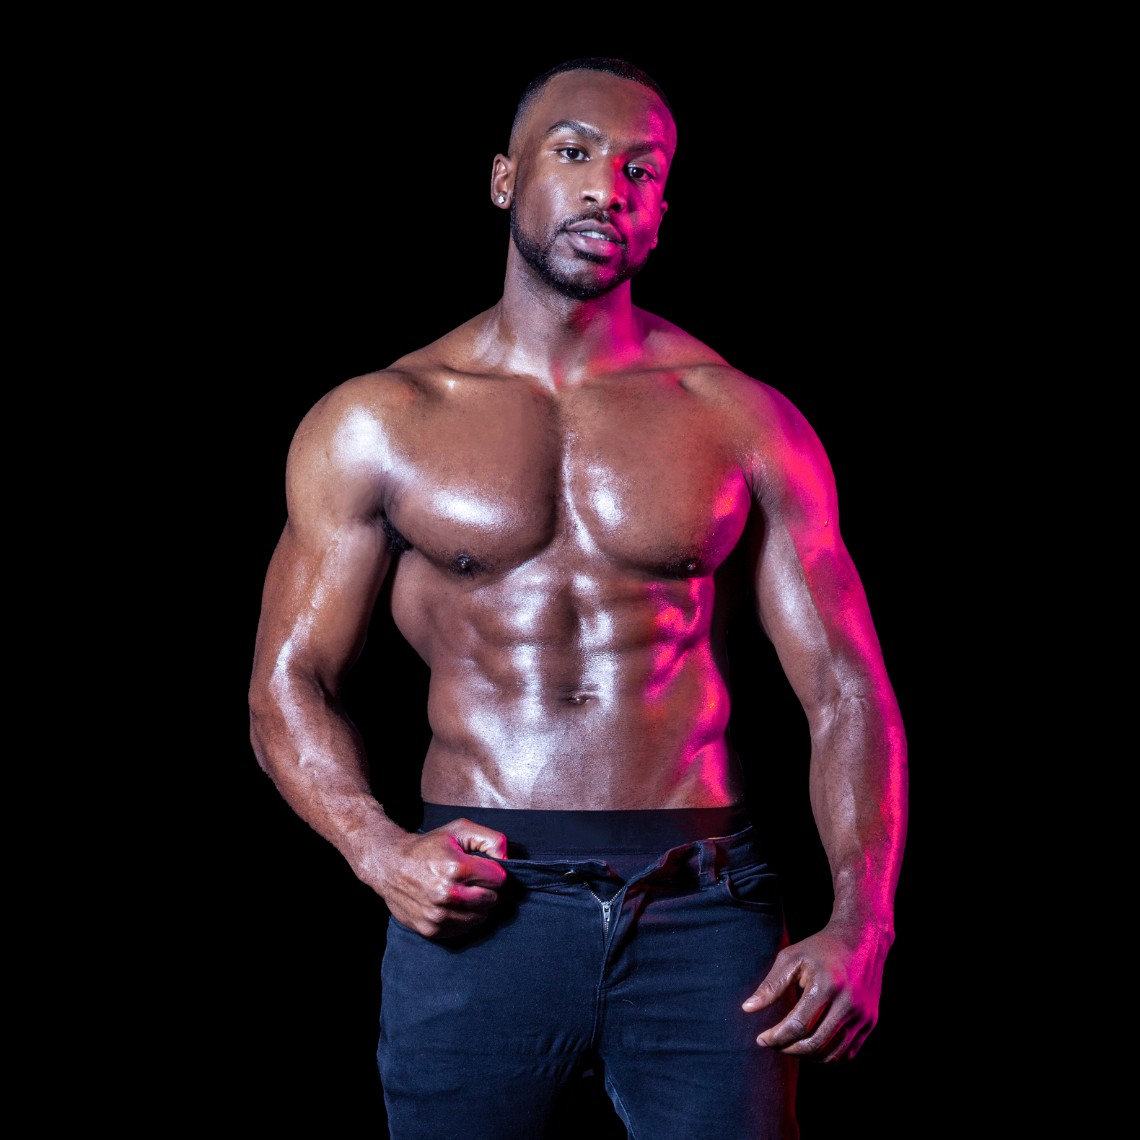 male strippers from the Dreamboys tour Pjay Finch